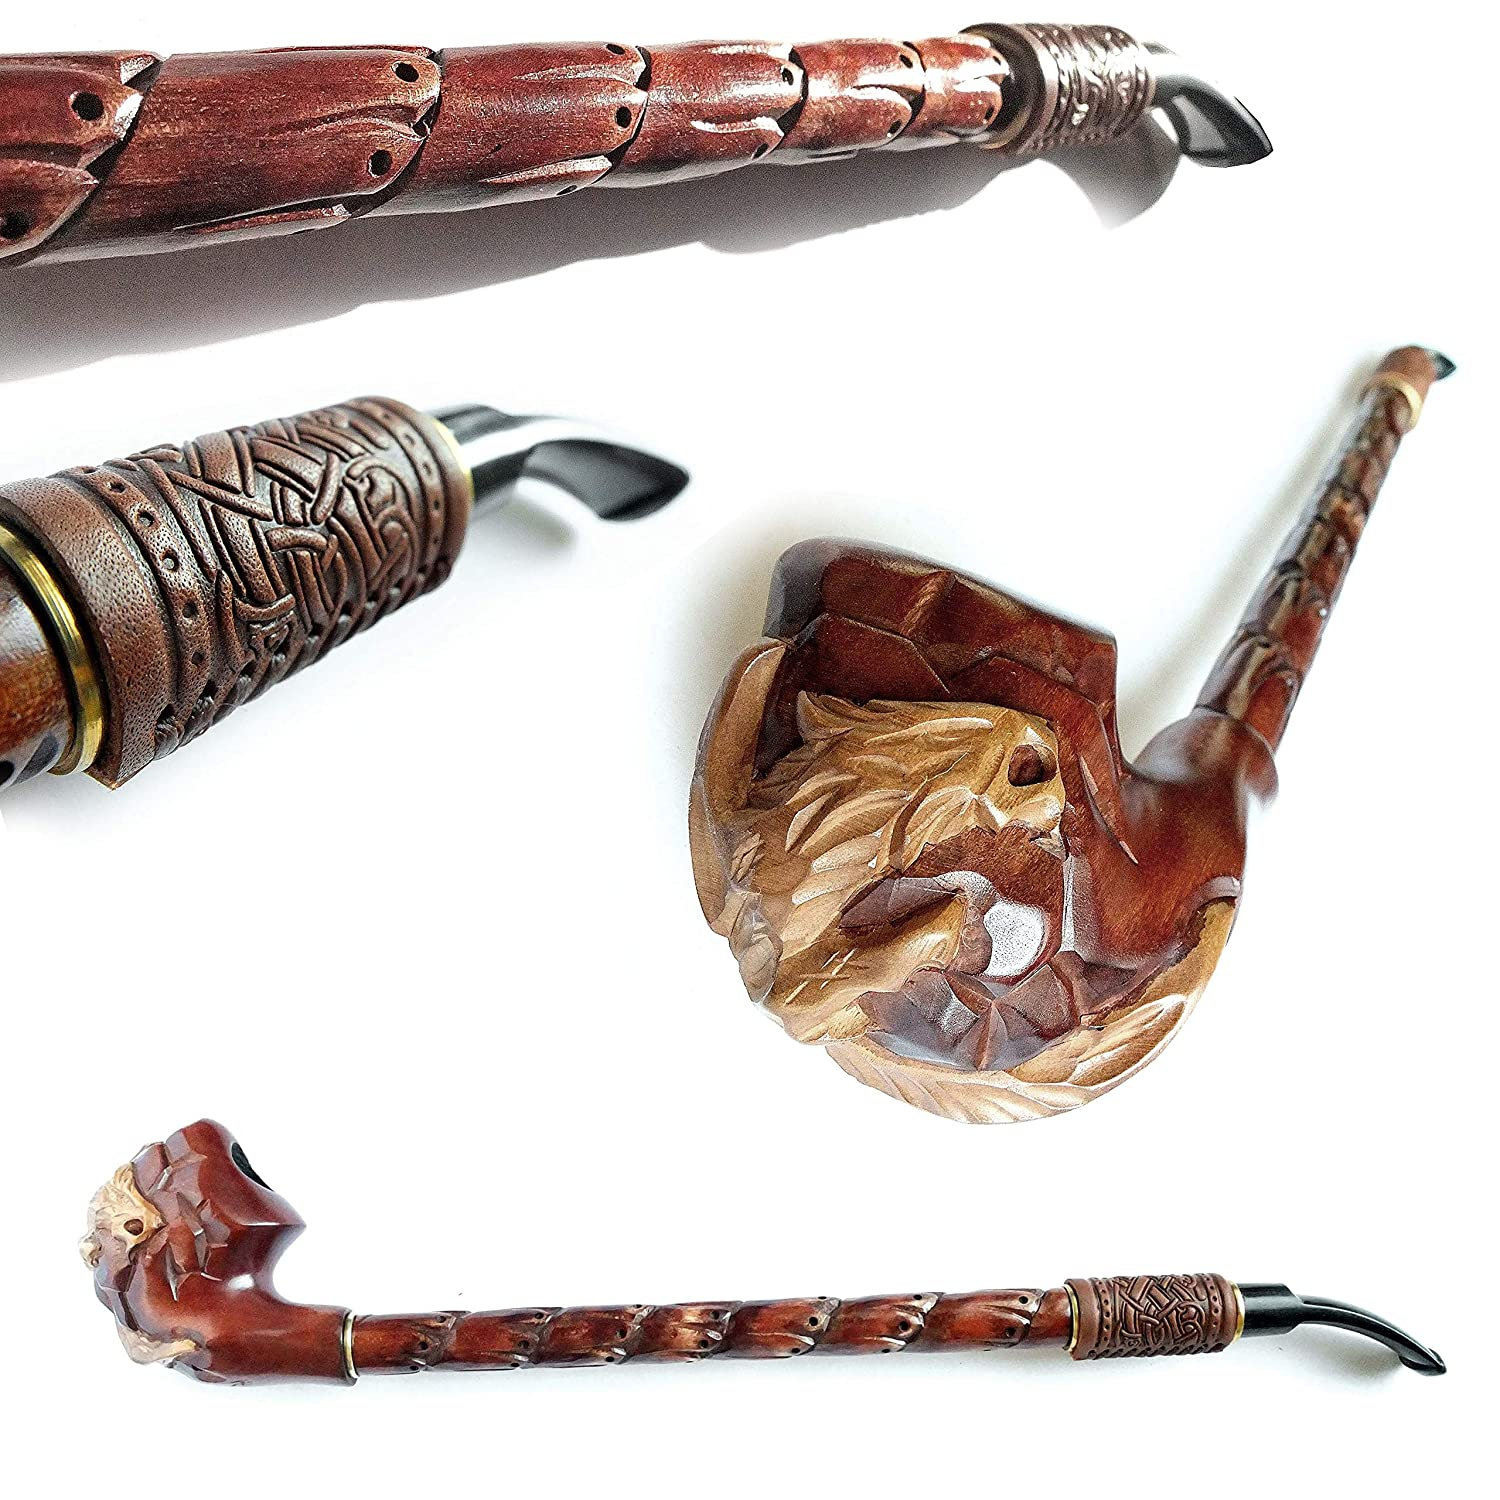 "Churchwarden 15'' Pipe""DRAGON"" Decorated with Leather. Tobacco Handcrafted Smoking Pipe of Pear Root, Designed for pipe smokers"